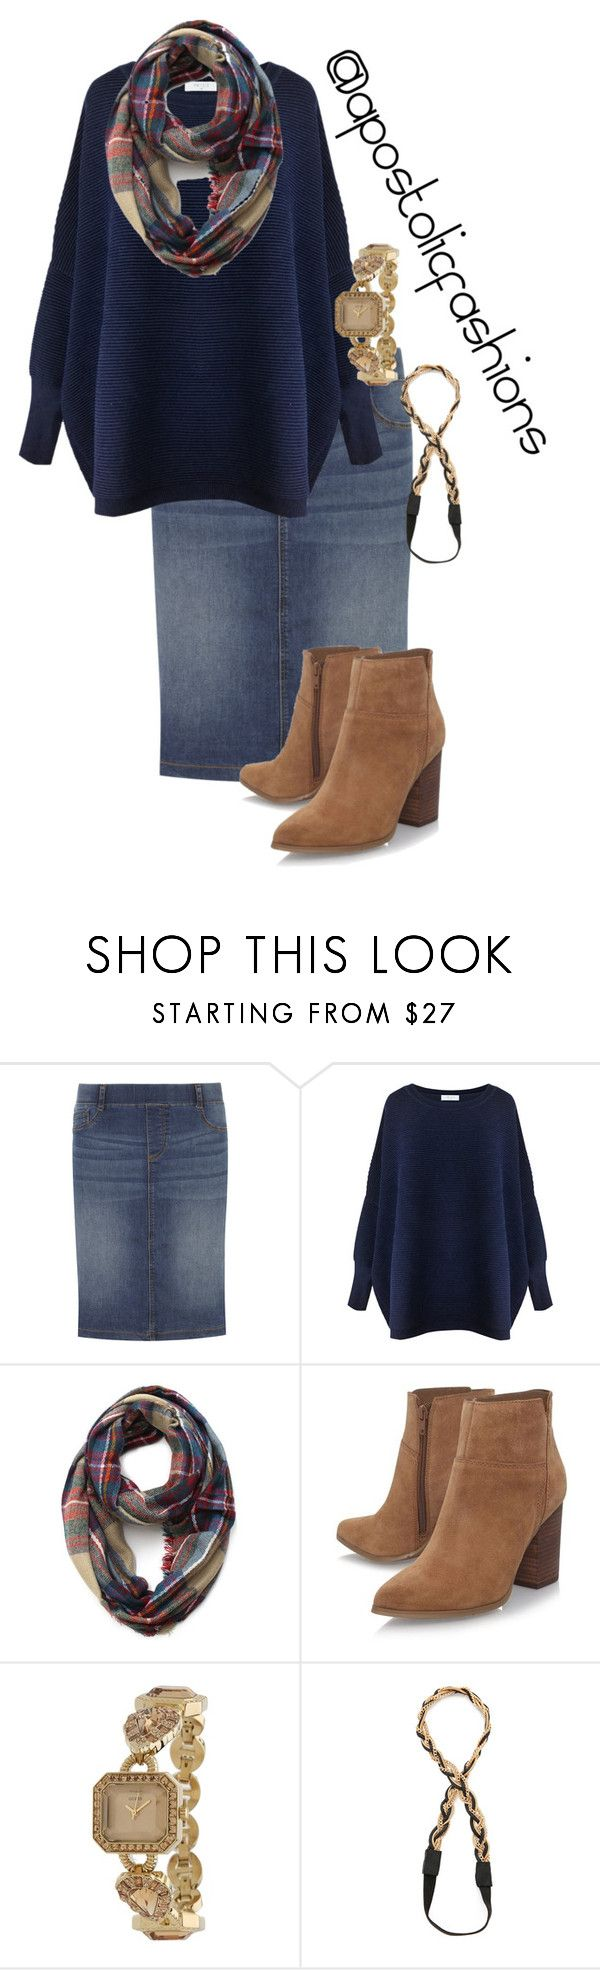 """Apostolic Fashions #1610"" by apostolicfashions ❤ liked on Polyvore featuring Dorothy Perkins, Paisie, Nine West, GUESS, Jules Smith, modestlykay and modestlywhit"